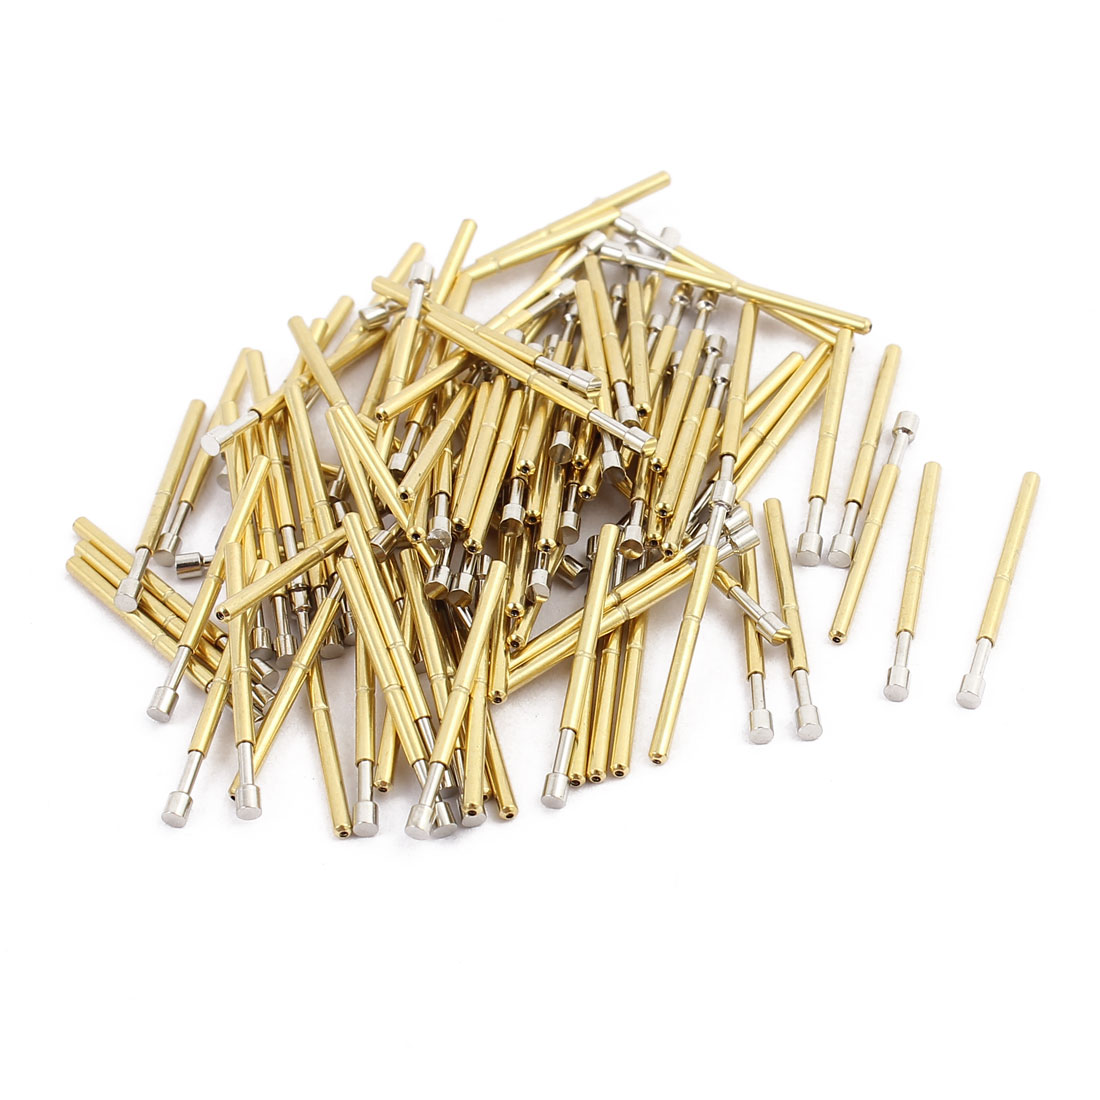 100pcs  P75-G2 1.0mm Dia 16.6mm Length Metal Spring Pressure Test Probe Needle